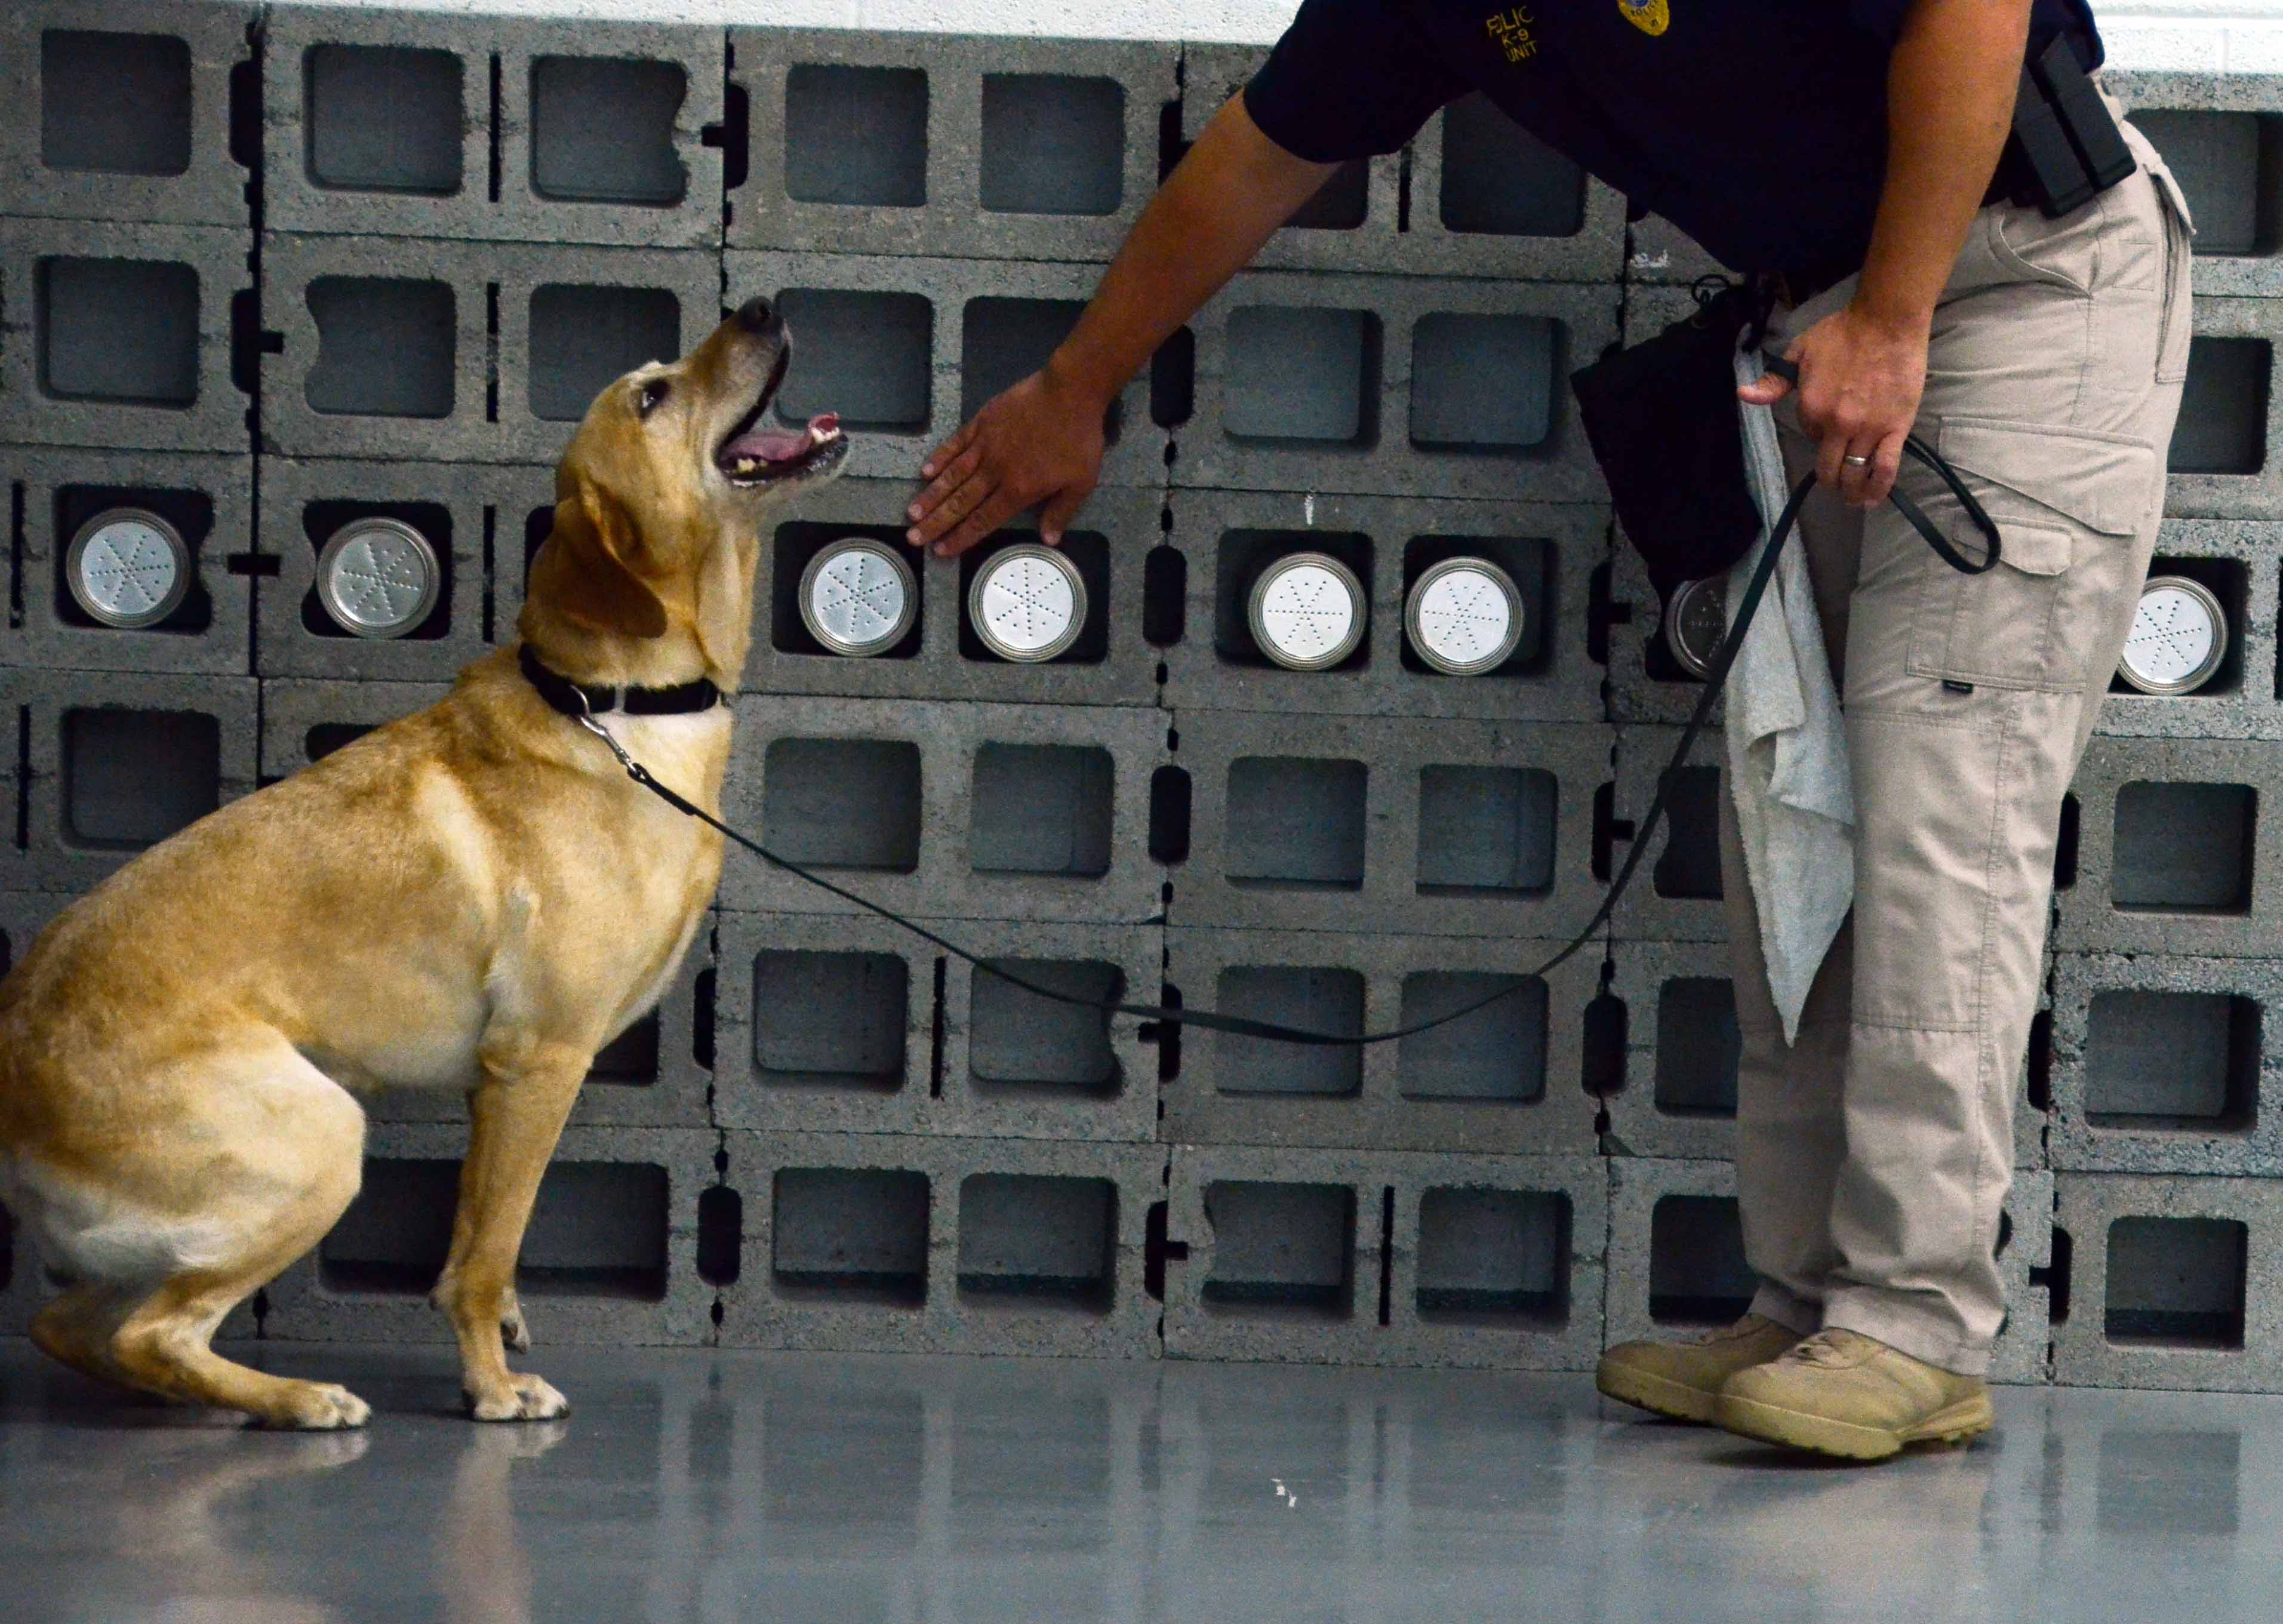 The CIA Reveals Their Top 10 Dog Training Tips